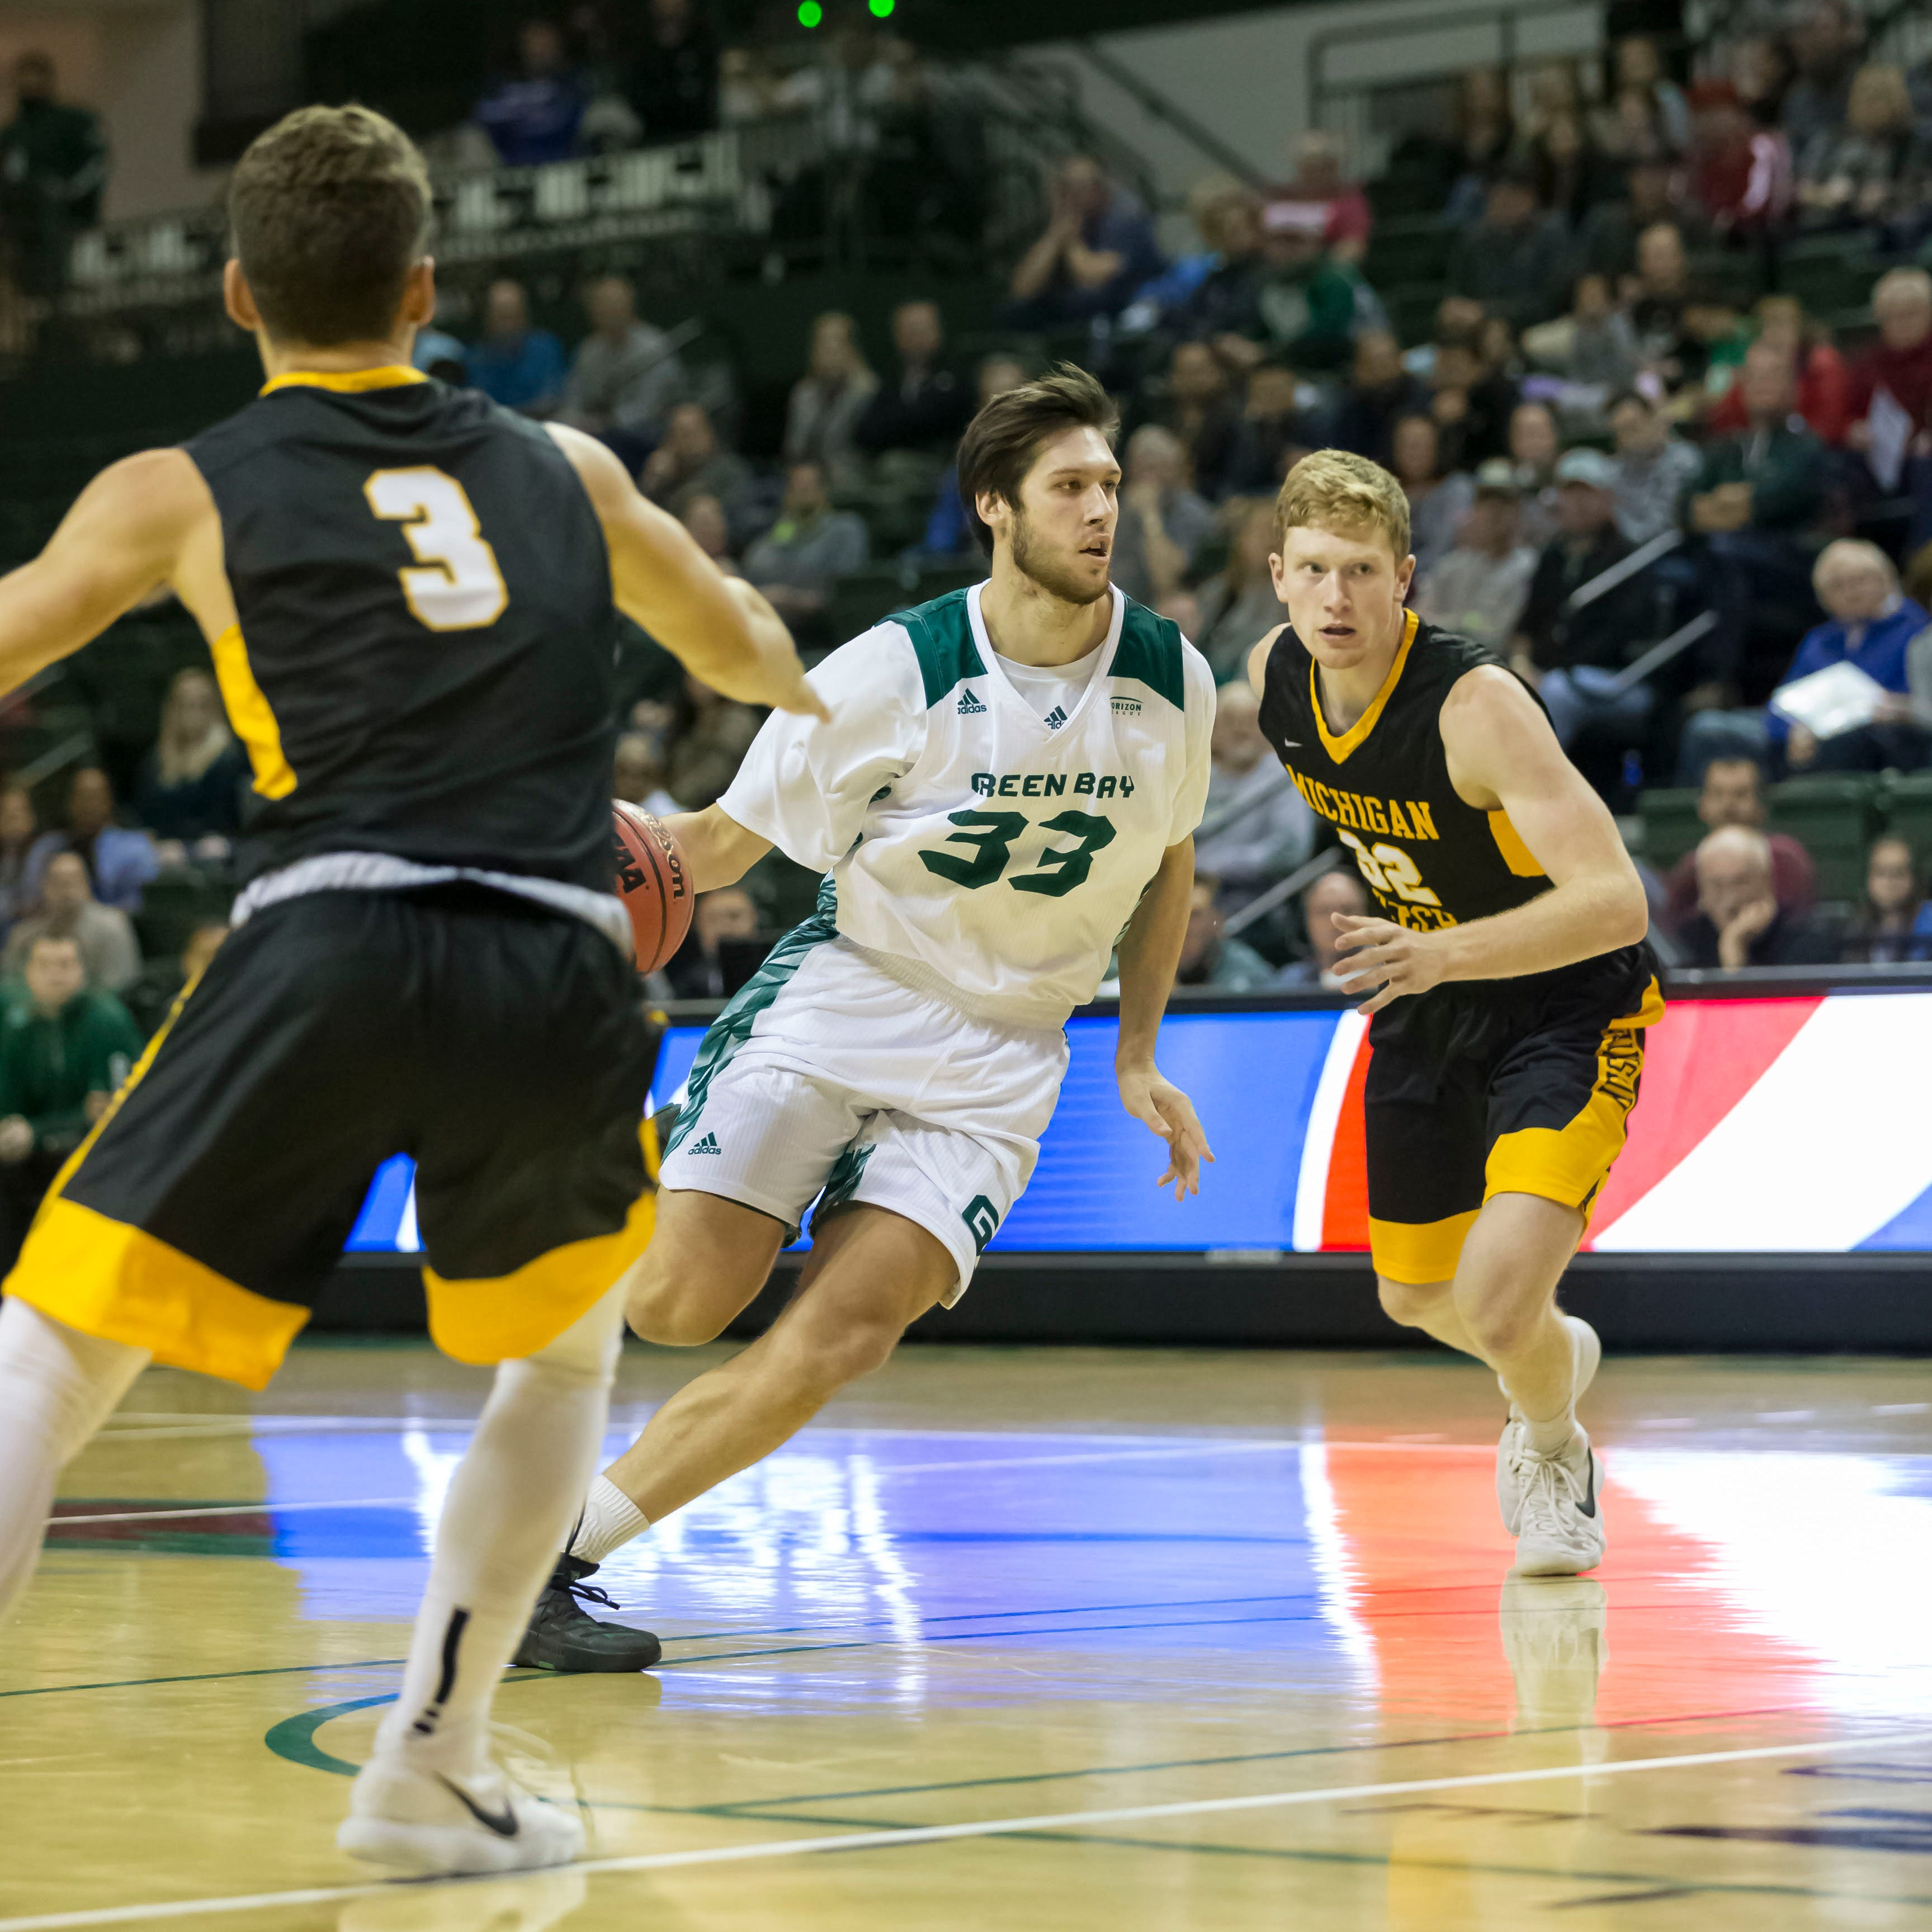 UWGB men's basketball: West De Pere's Cody Schwartz enjoying his return home